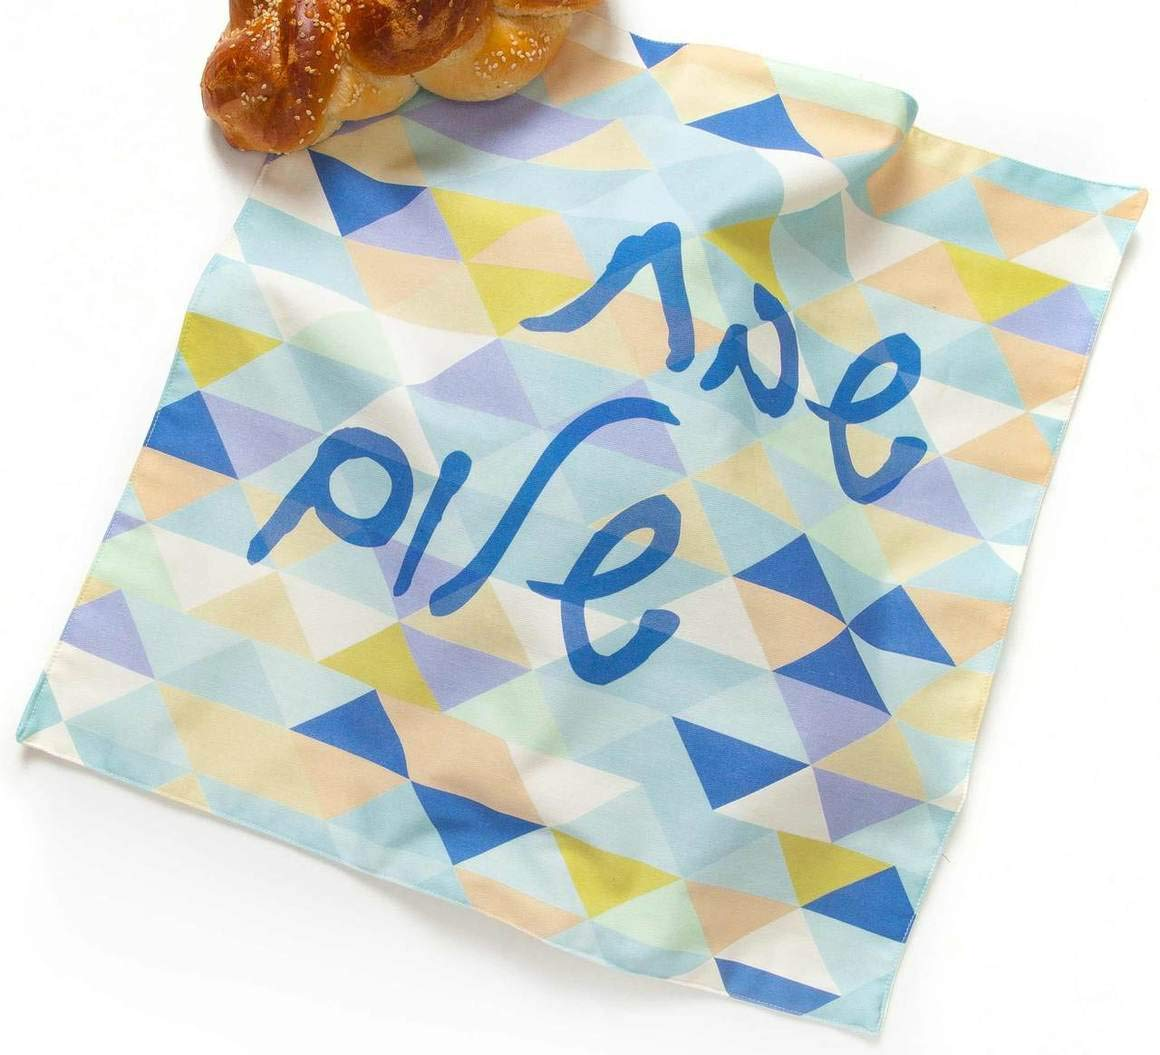 Barbara Shaw Gifts Blue Triangle Tile Challah Cover, Israeli Gifts Jewish Gifts for The Home Hostess Gifts Hand Made and Sewn in Jerusalem